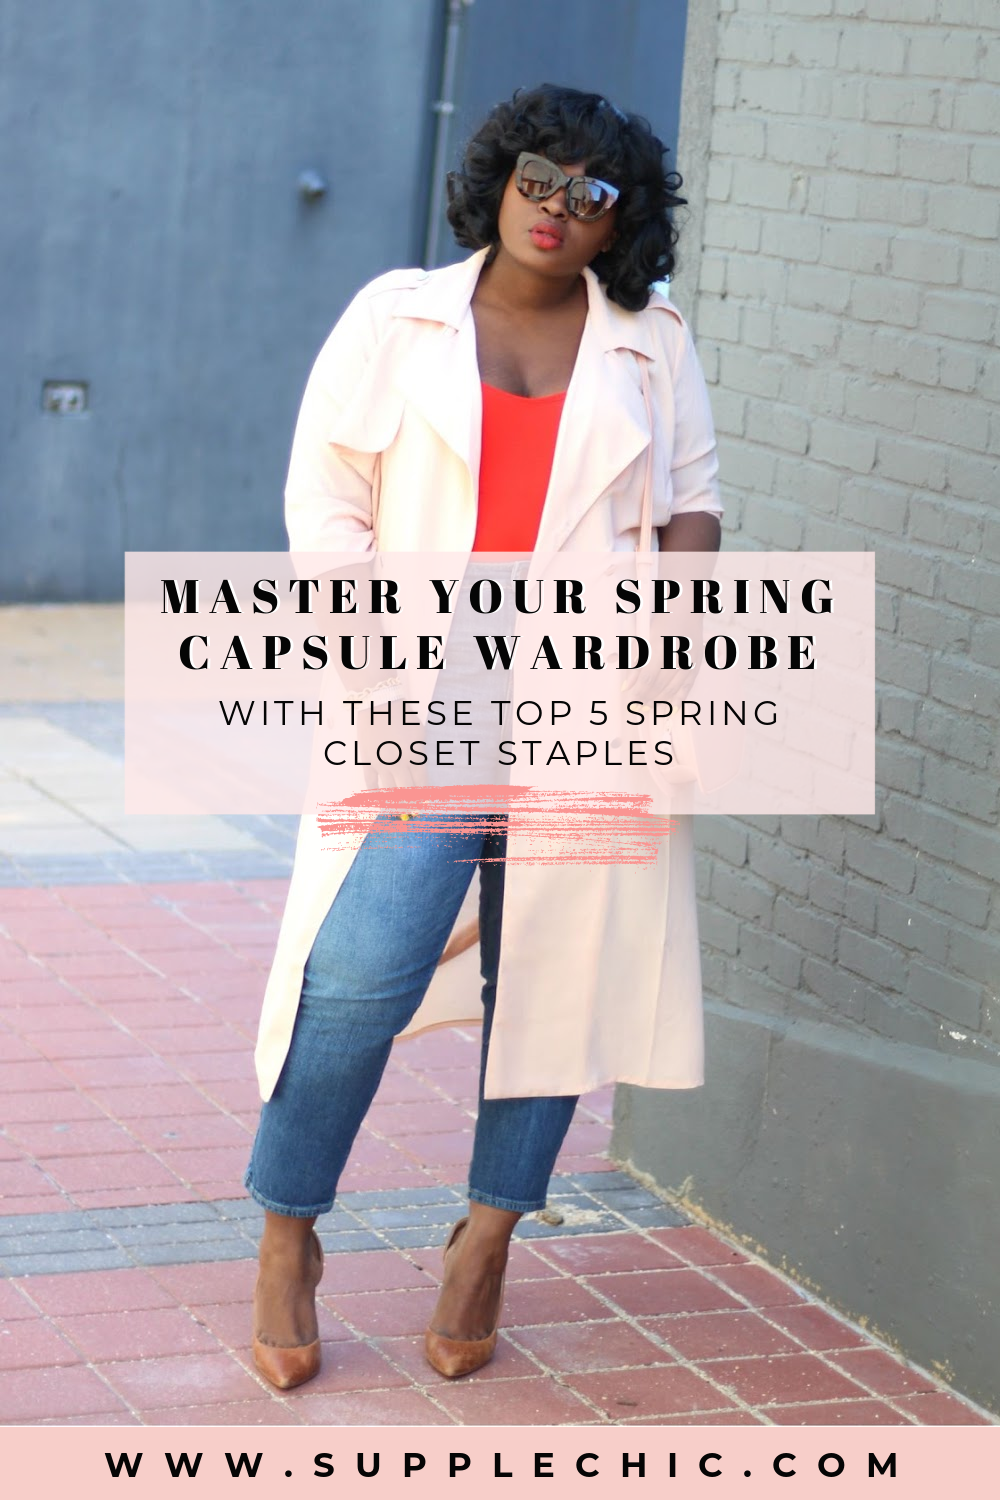 Spring capsule wardrobe staples from supplechic a fashion and lifestyle blog based out of Baltimore